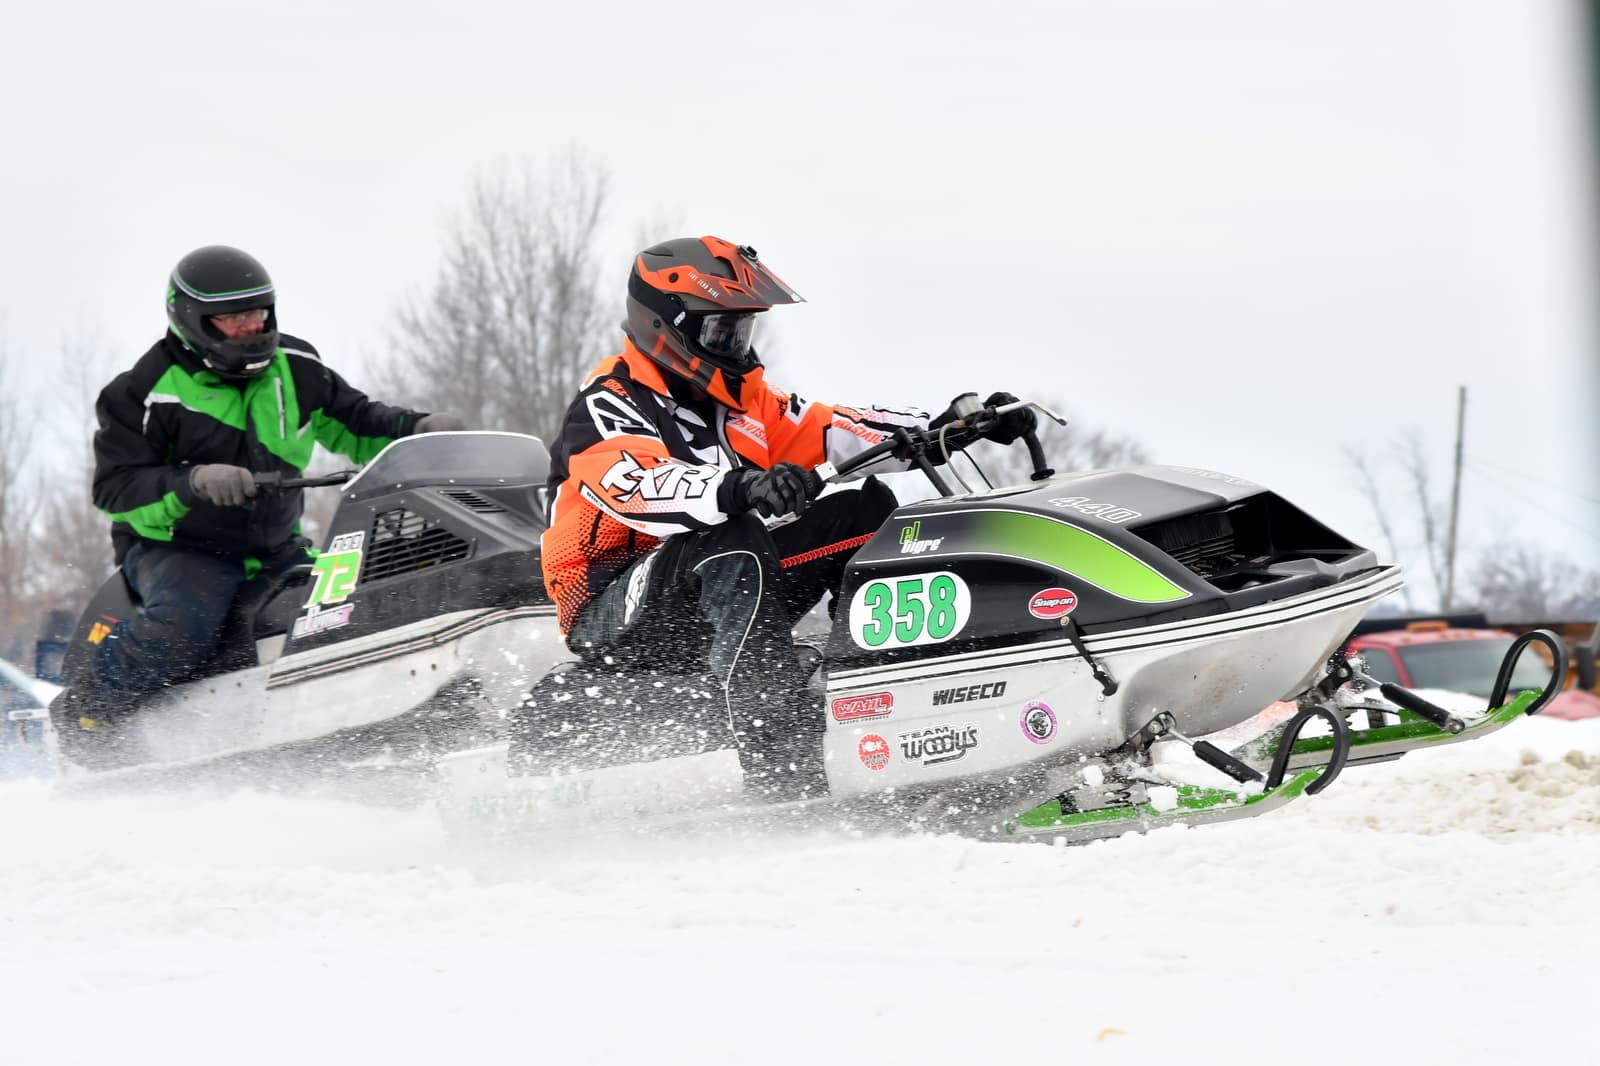 st-lawrence-county-snowmobiling1